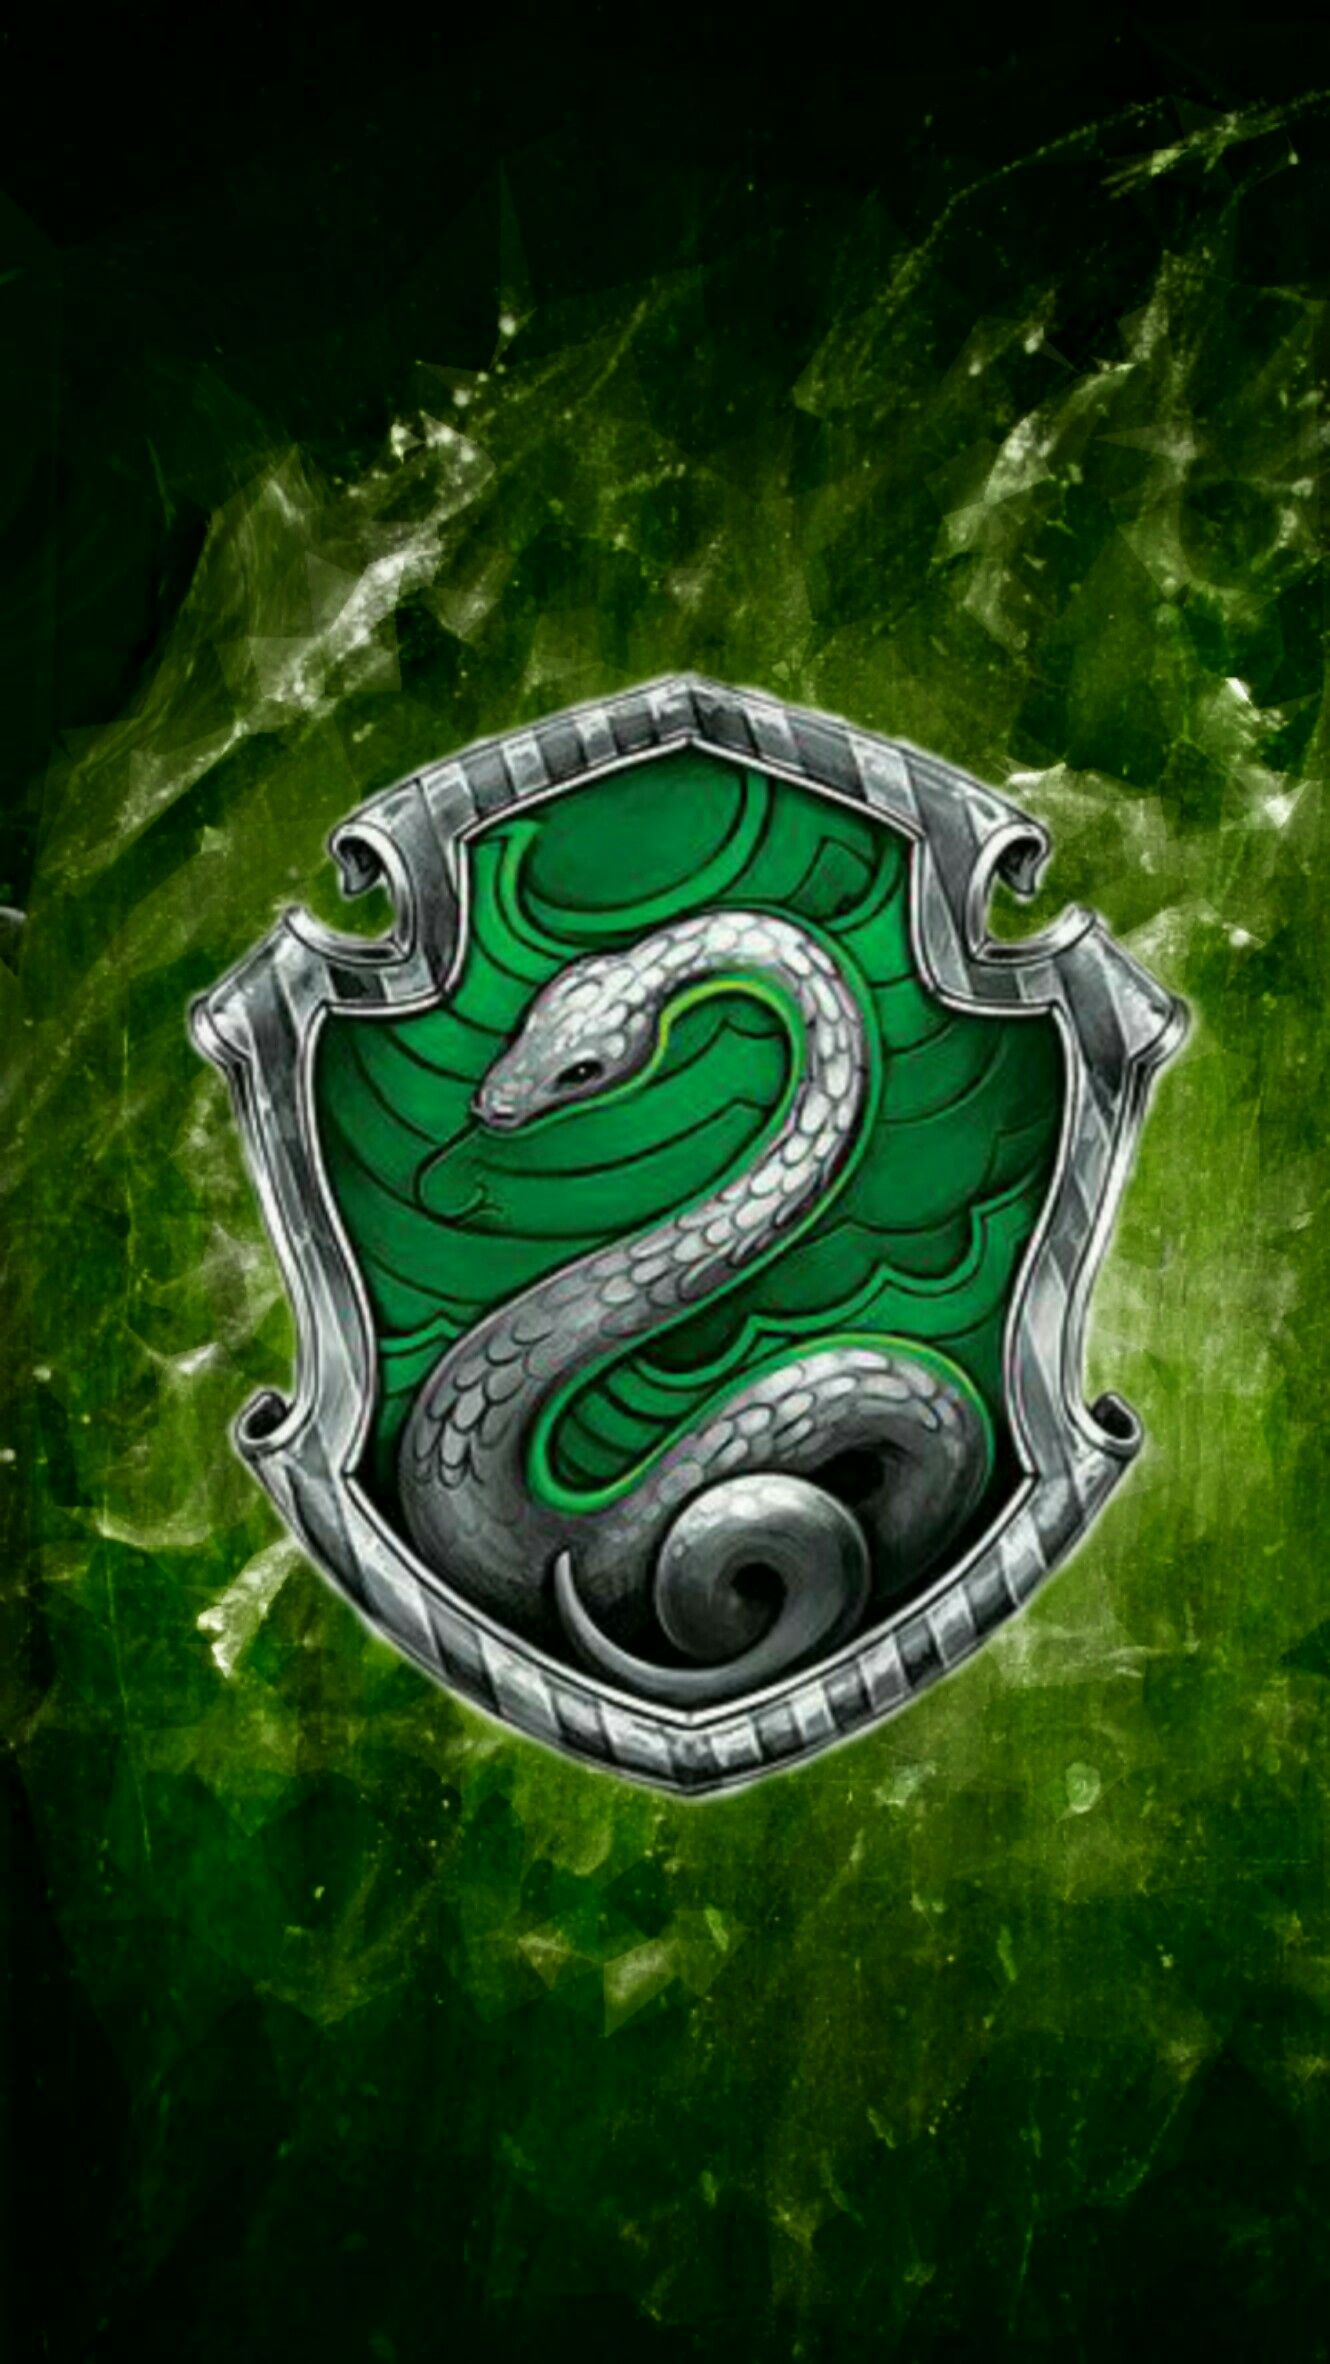 Slytherin wallpaper Sonserina, Harry potter itens e